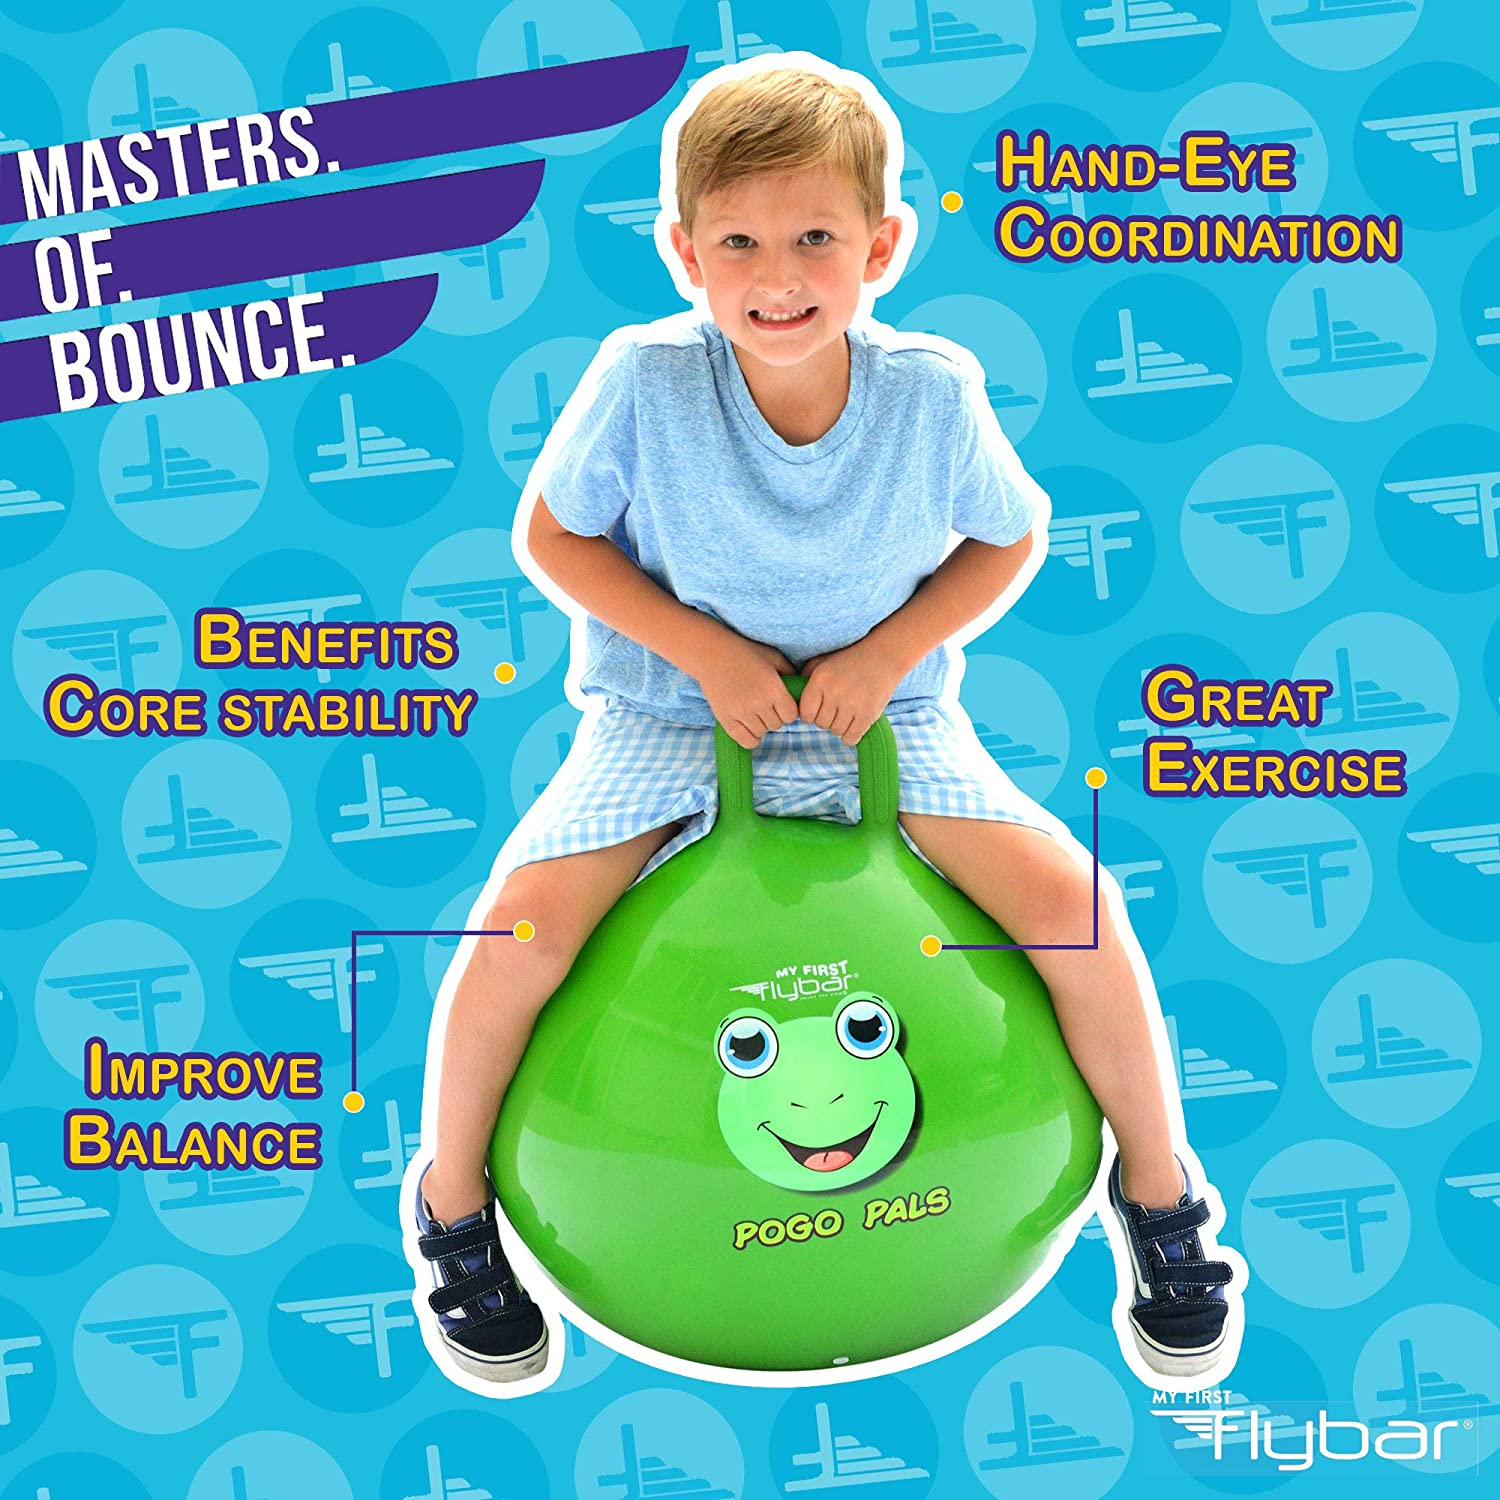 Balance Ball for Kids Frog Green, Small Air Pump Included Flybar My First Pogo Pals Hopper Ball for Kids Ages 3 and up Bouncy Ball with Handle